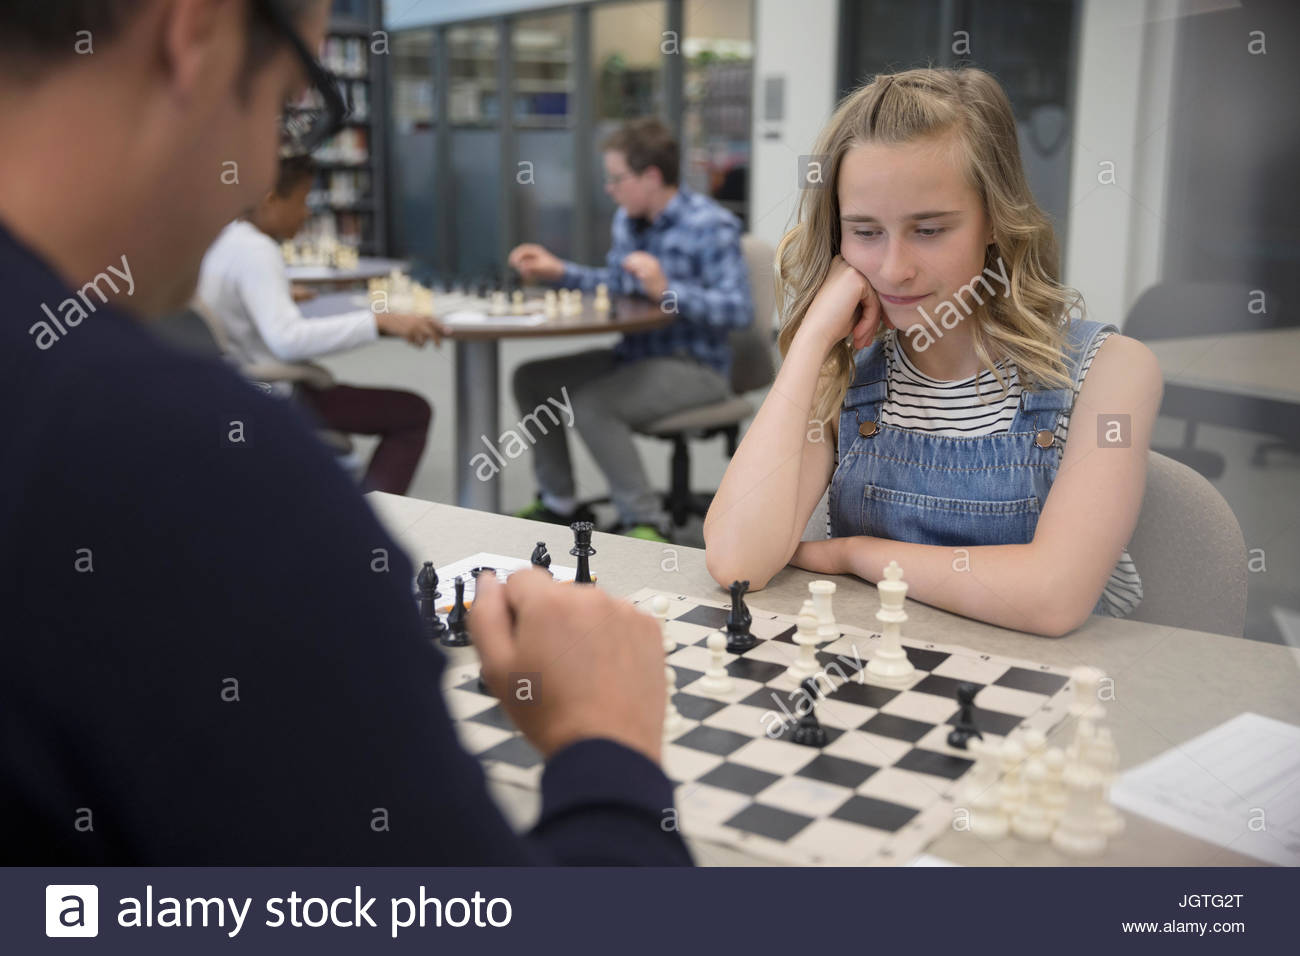 Teacher and girl middle school student playing chess in chess club - Stock Image